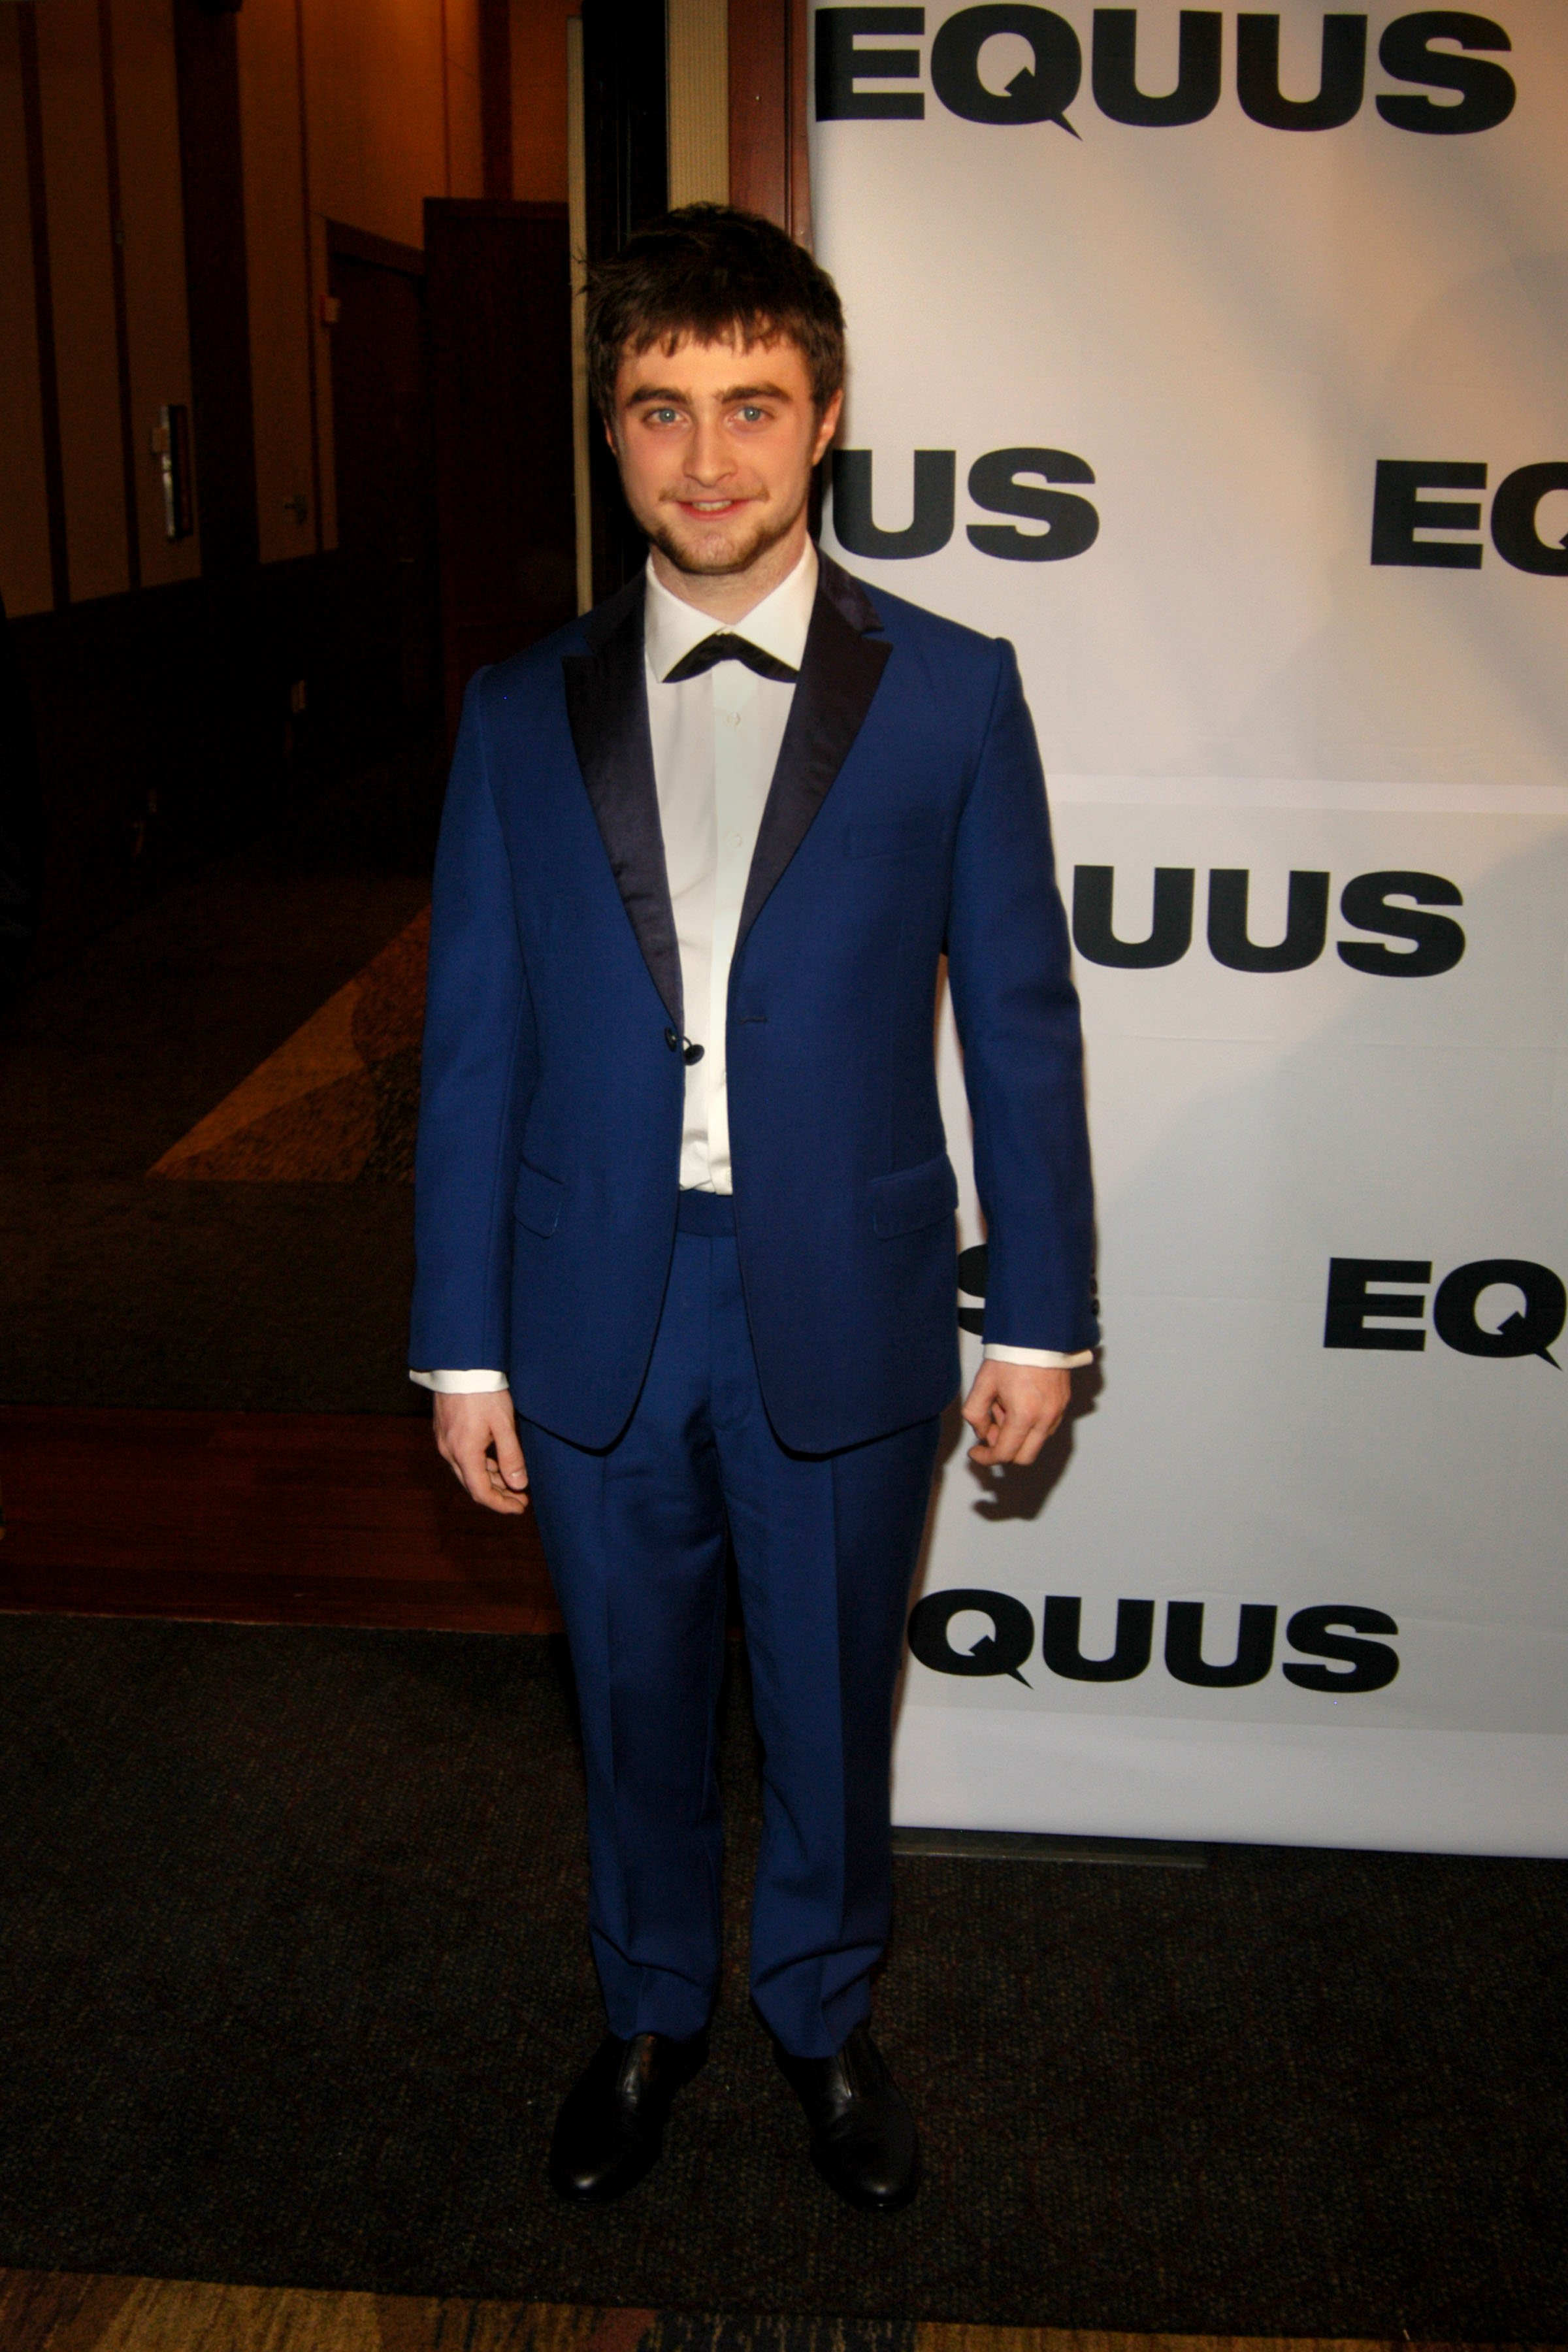 45313_Daniel_Radcliffe_-_Equus_After_Party_in_NYC_CU_ISA_01_122_1194lo.JPG